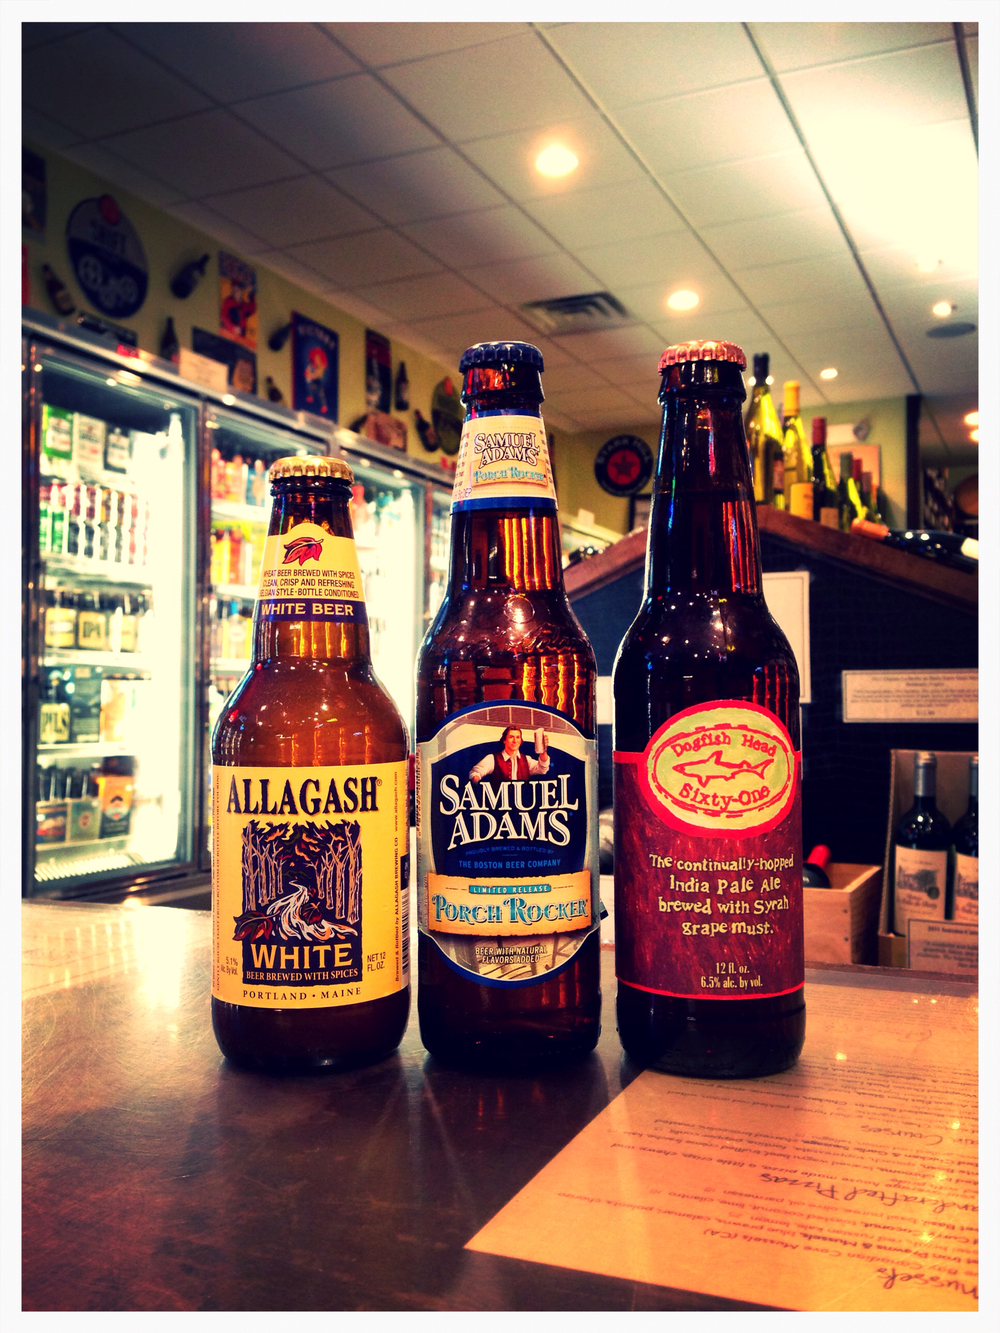 Allagash White, Sam Adams Porch Rocker, and Dogfish Head Sixty-One (restock)